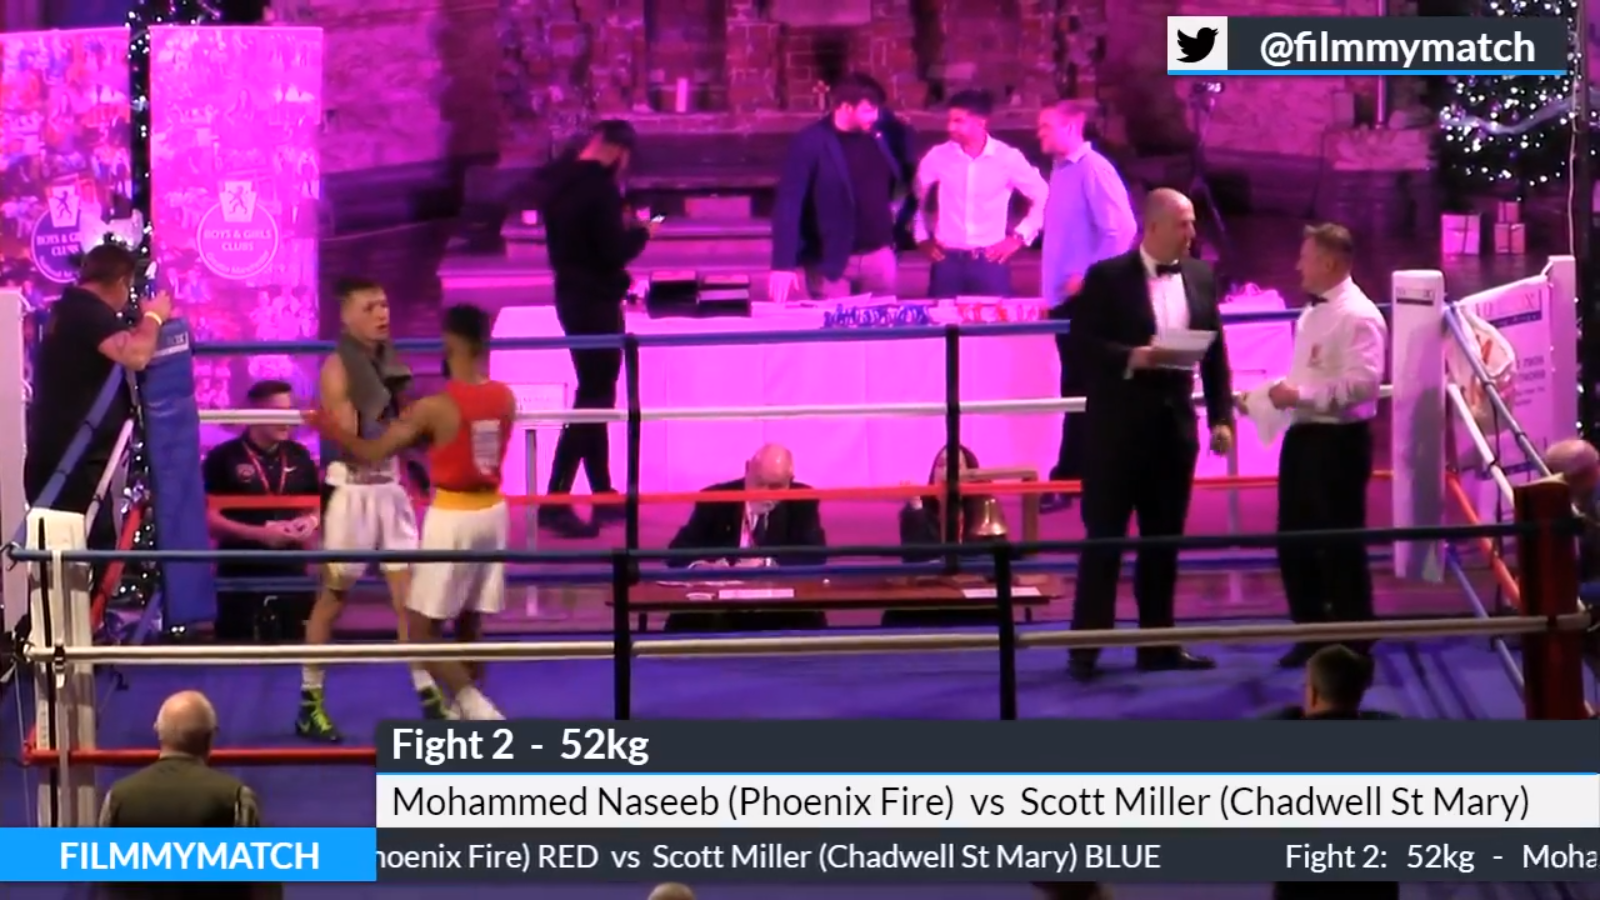 Our live coverage of the Class D National Boxing finals